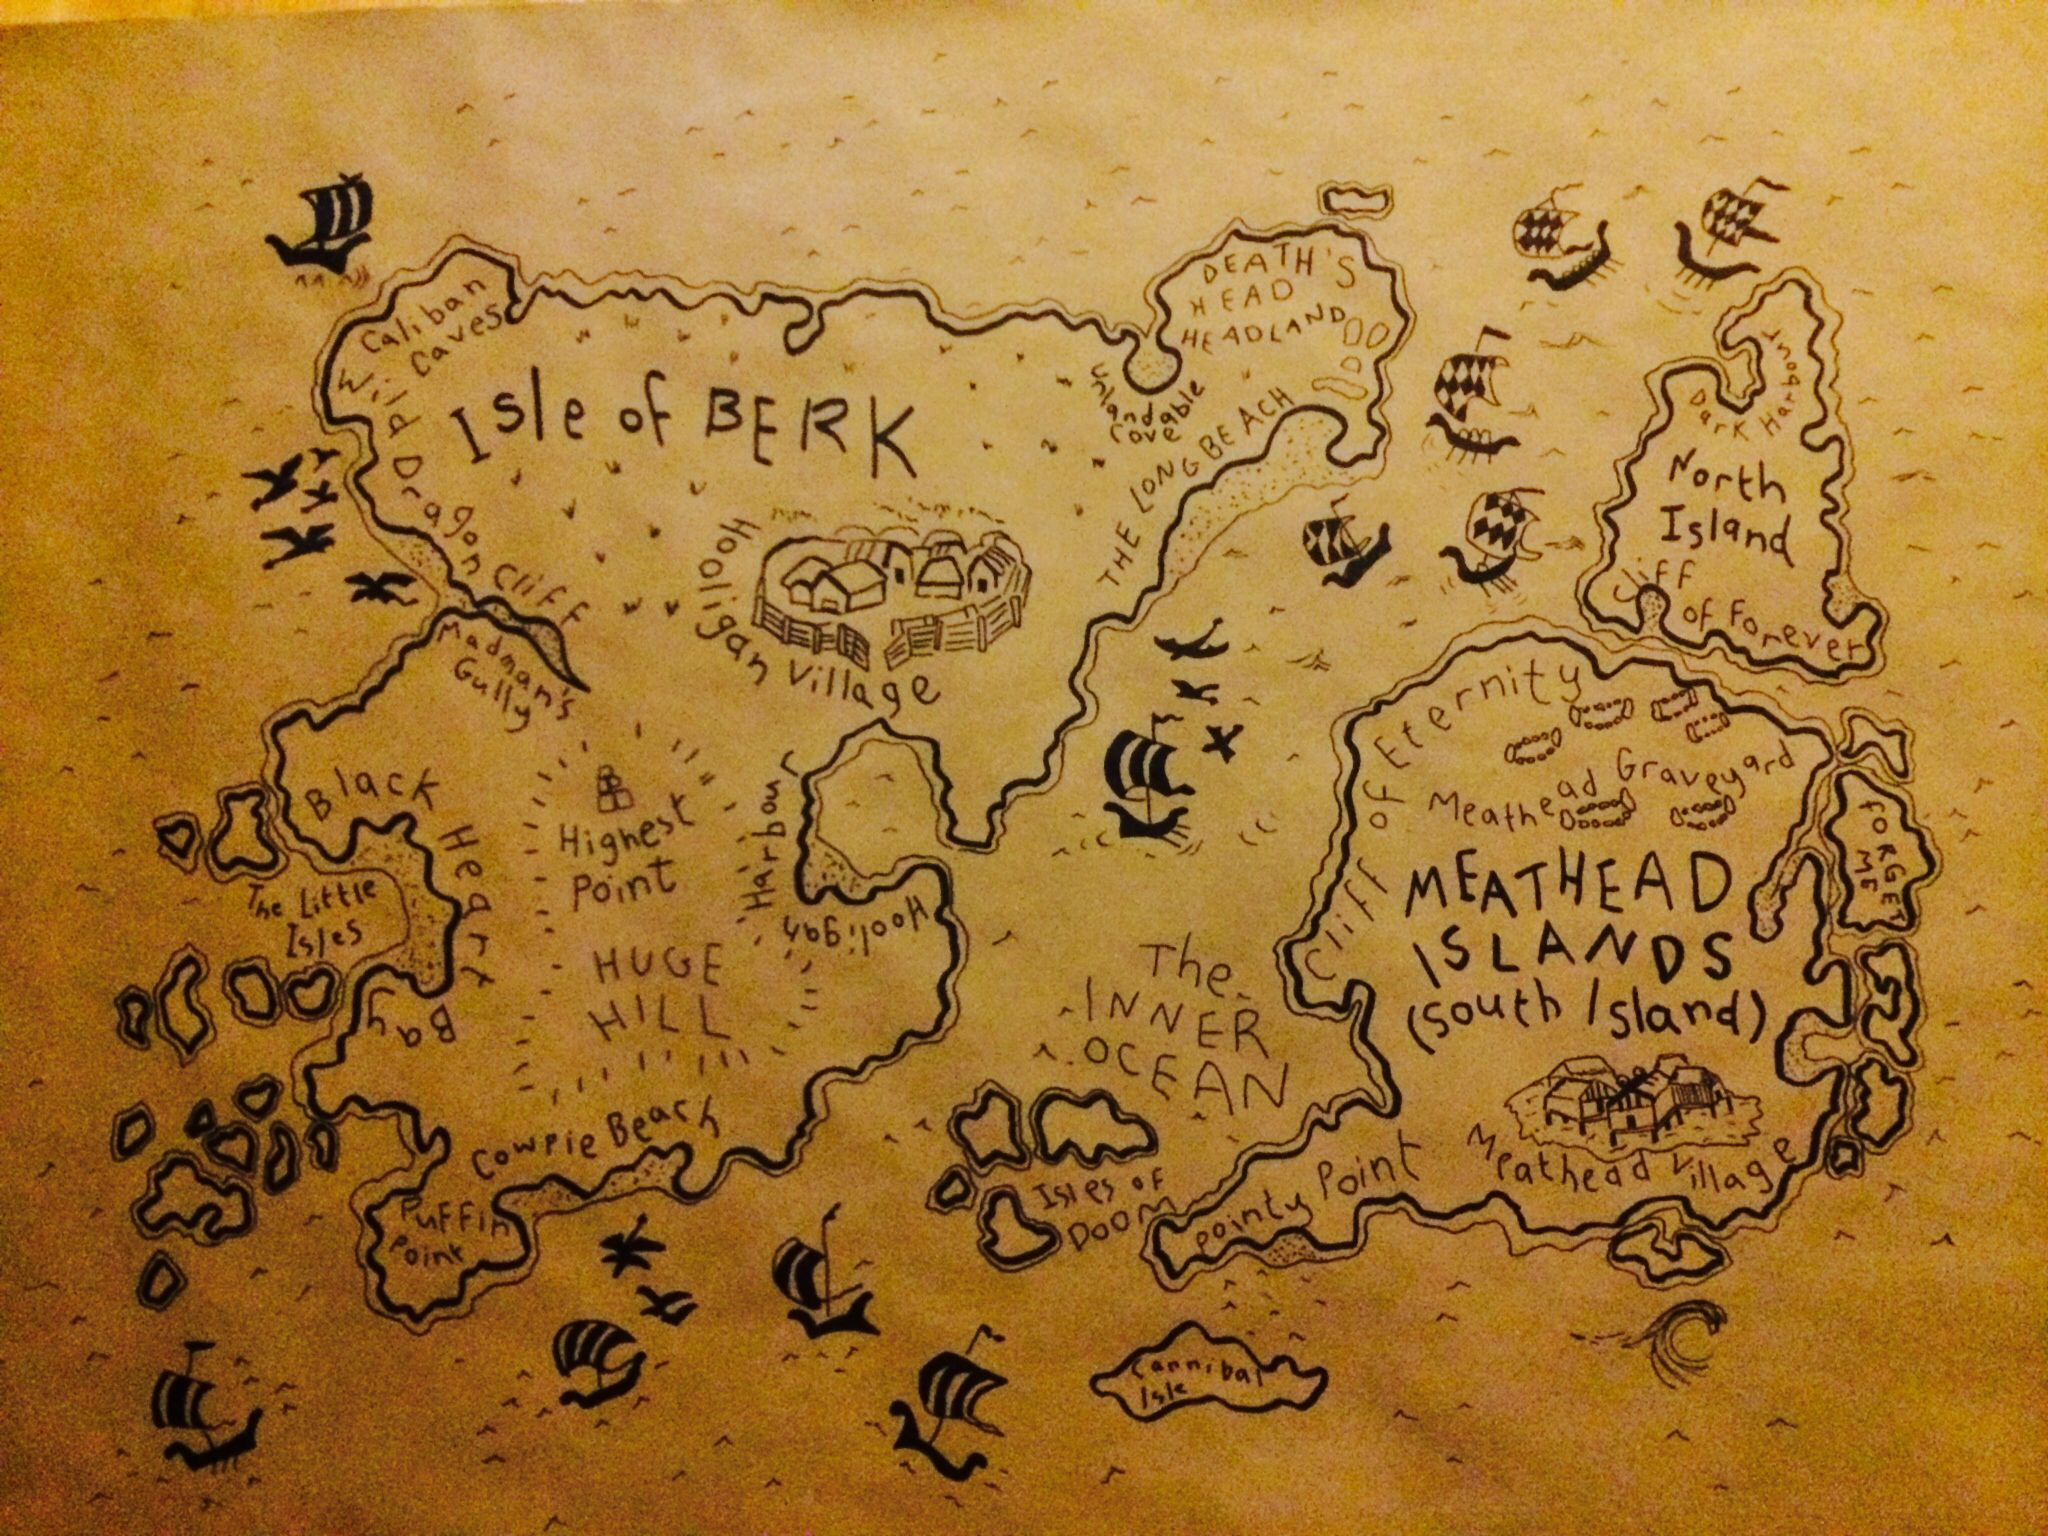 Isle of berk and meathead islands map traced onto brown craft isle of berk and meathead islands map traced onto brown craft paper for a backdrop for how to train your dragon party ccuart Images